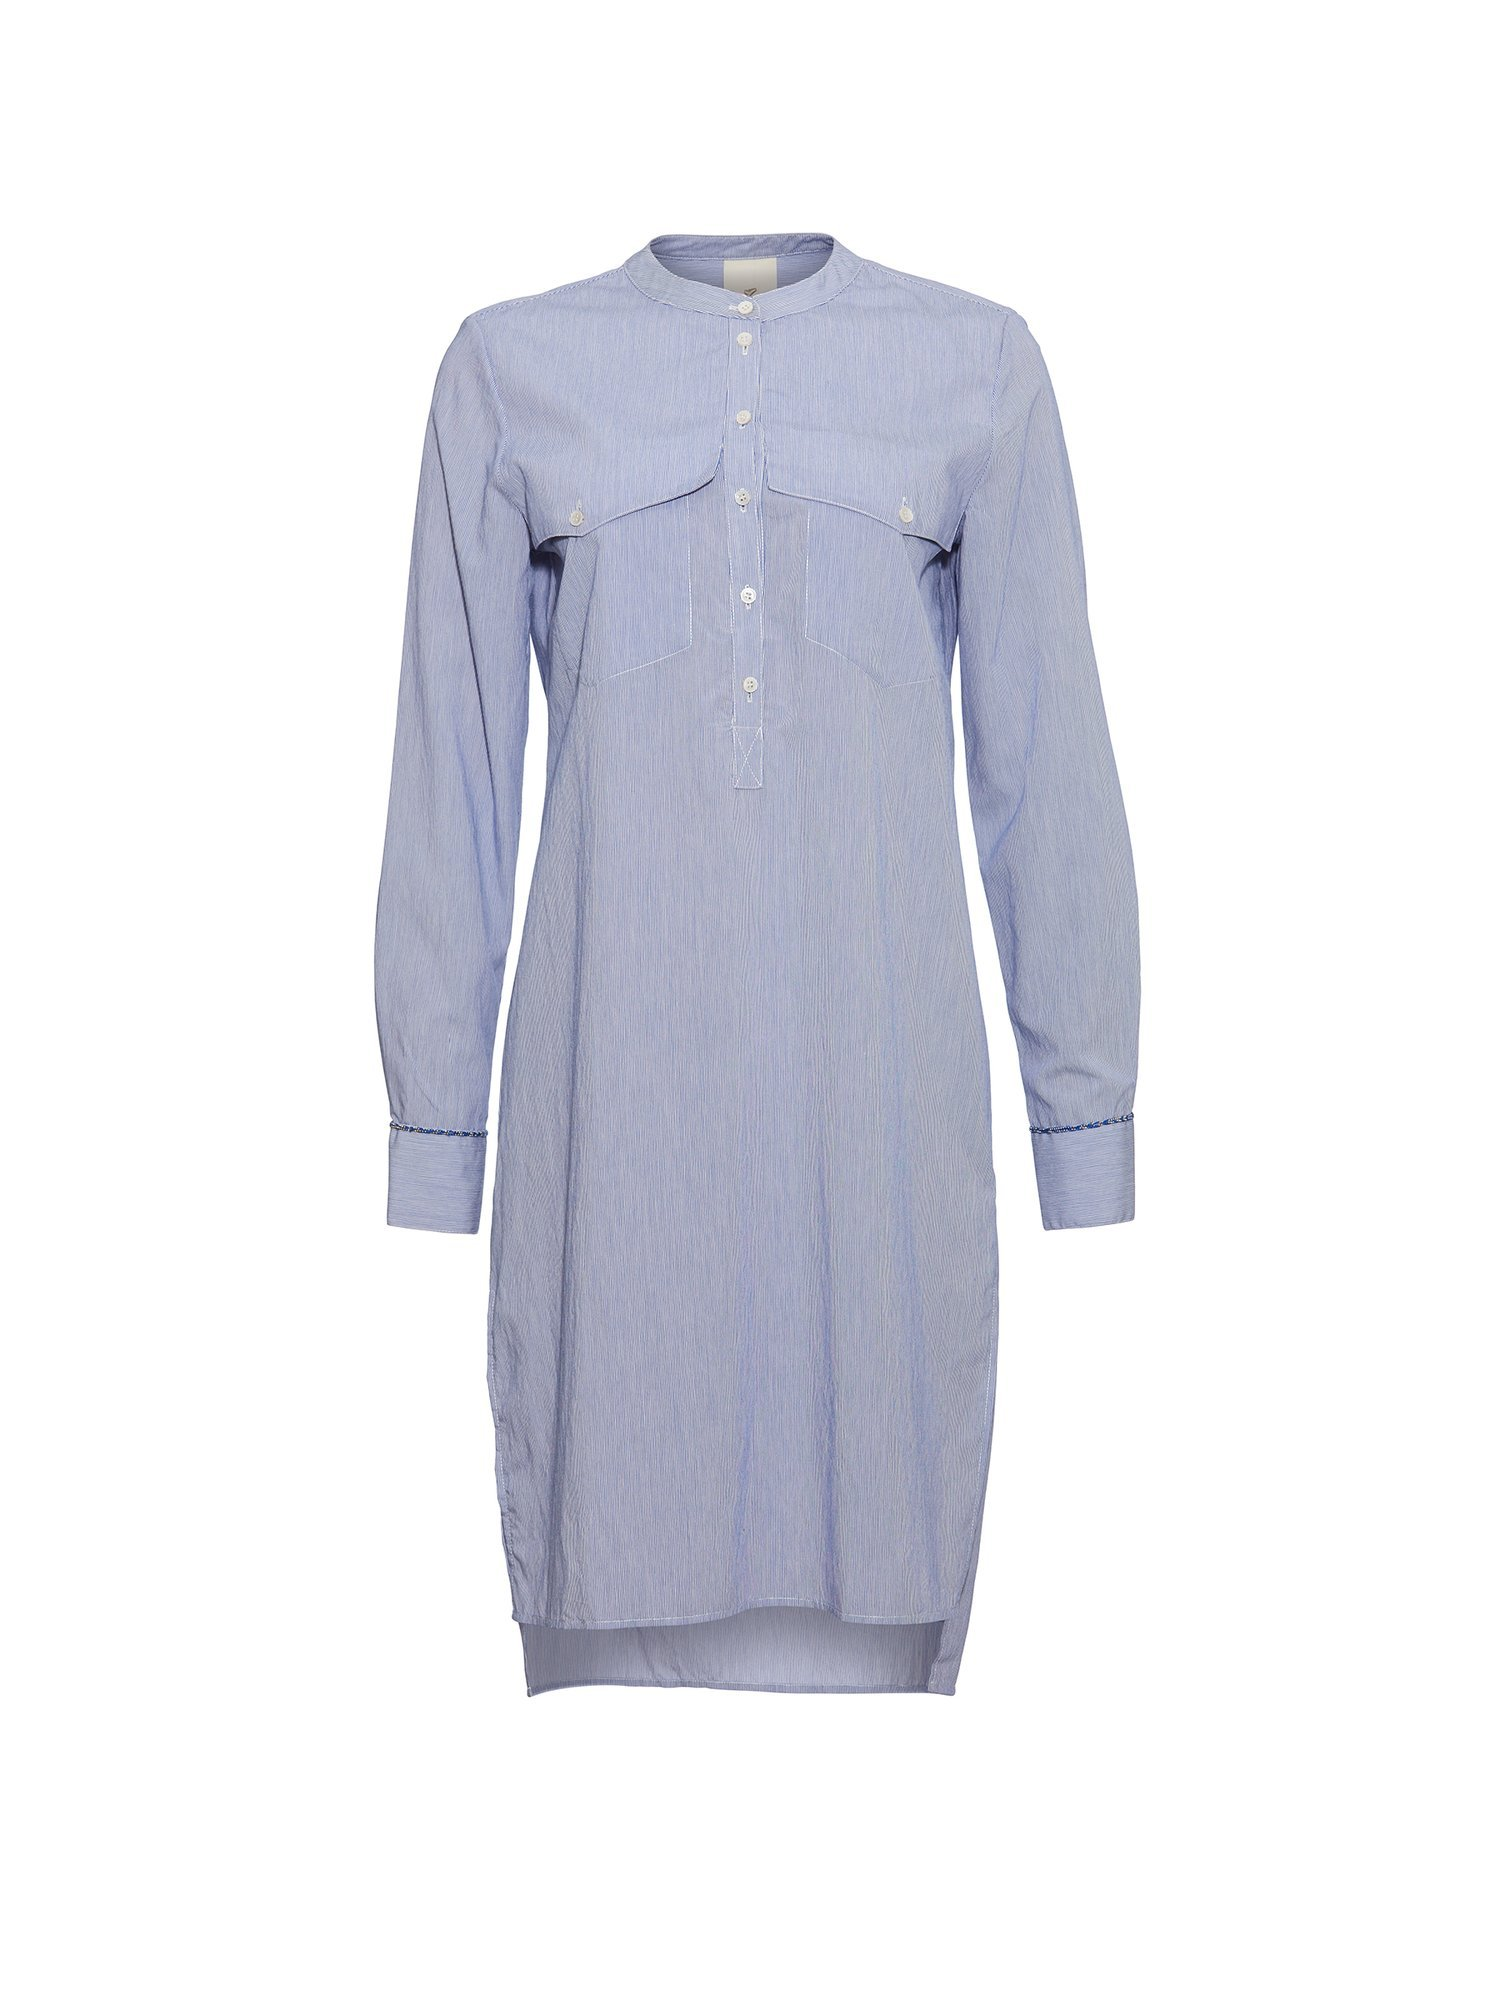 Heartmade/Julie Fagerholt Maki Shirt/Dress 943